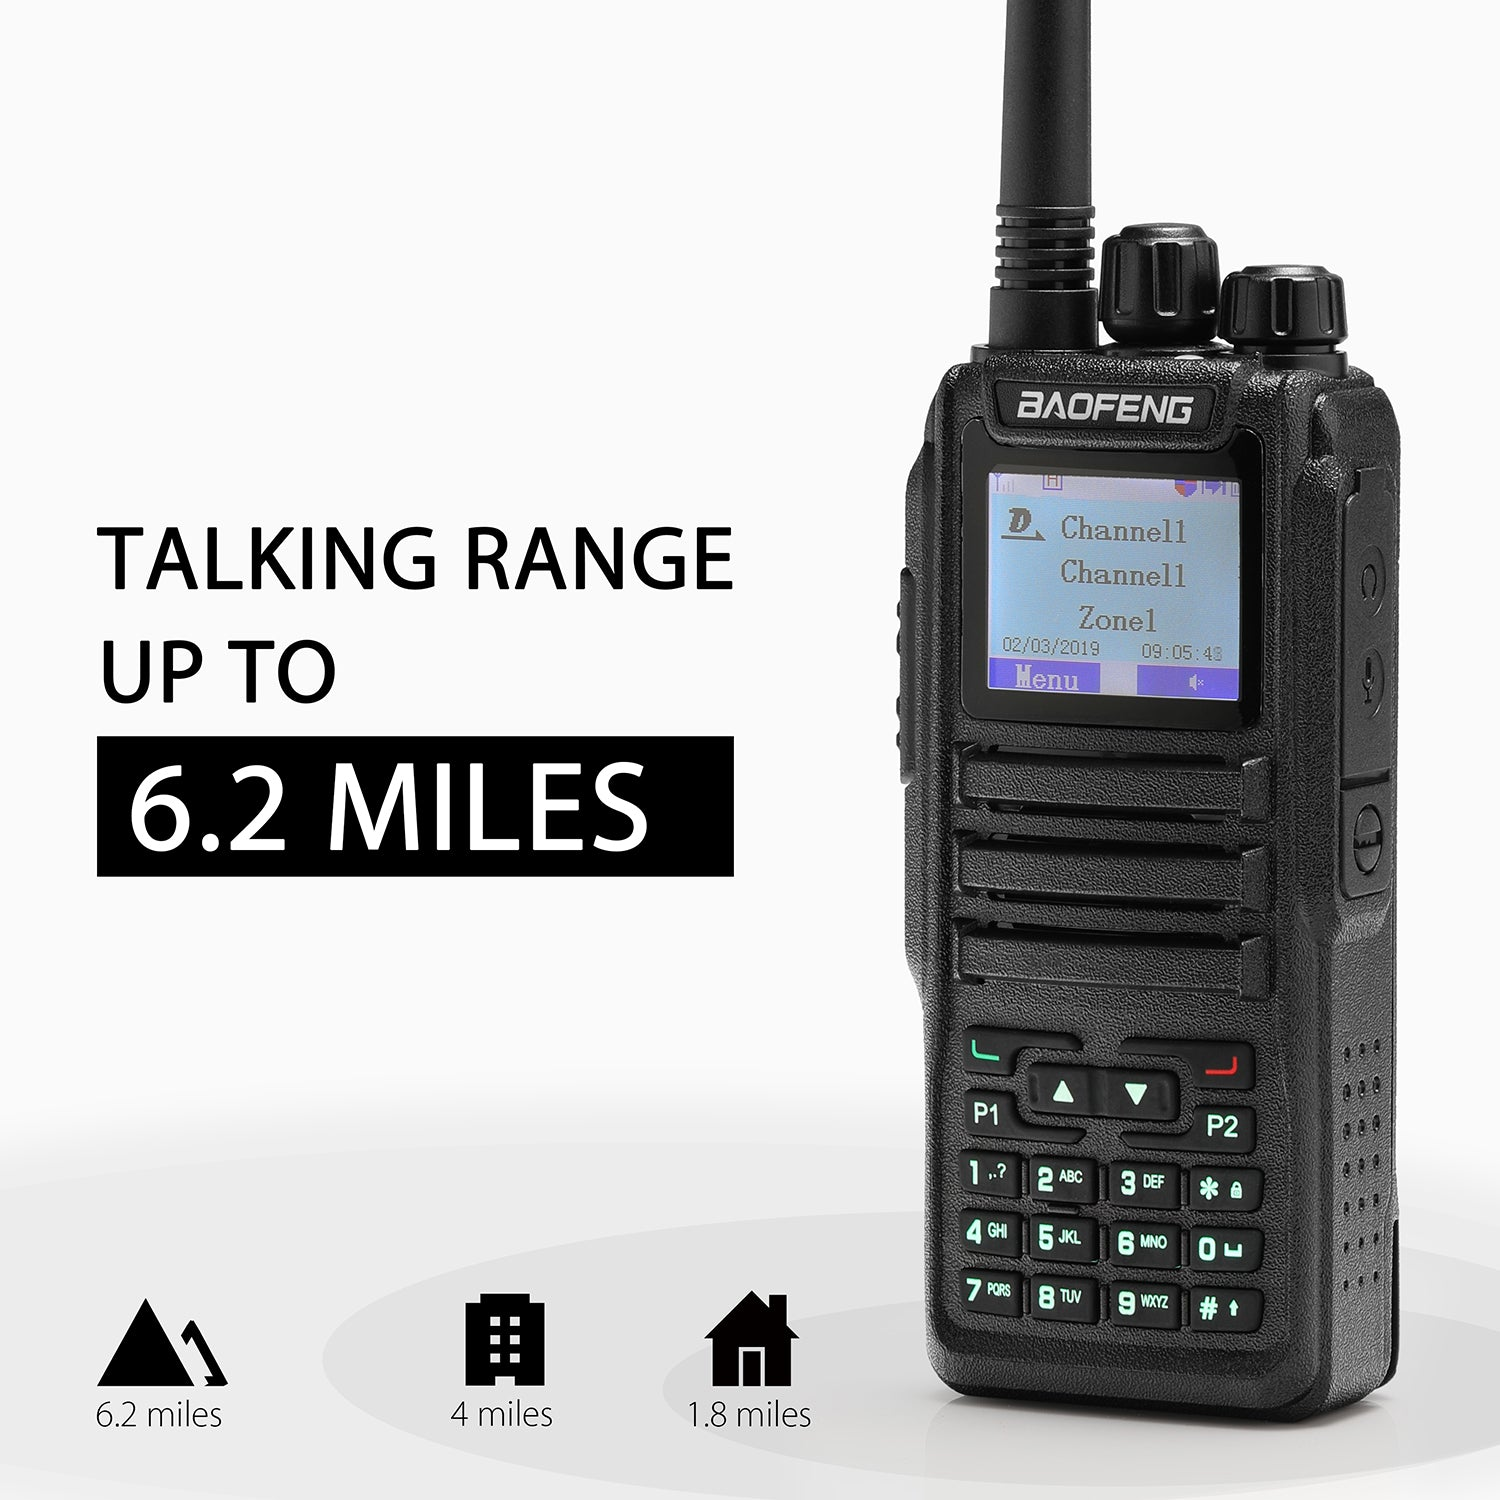 Baofeng DM-1701 DMR   Dual Band   5W   120K Contacts Import   SMS Function